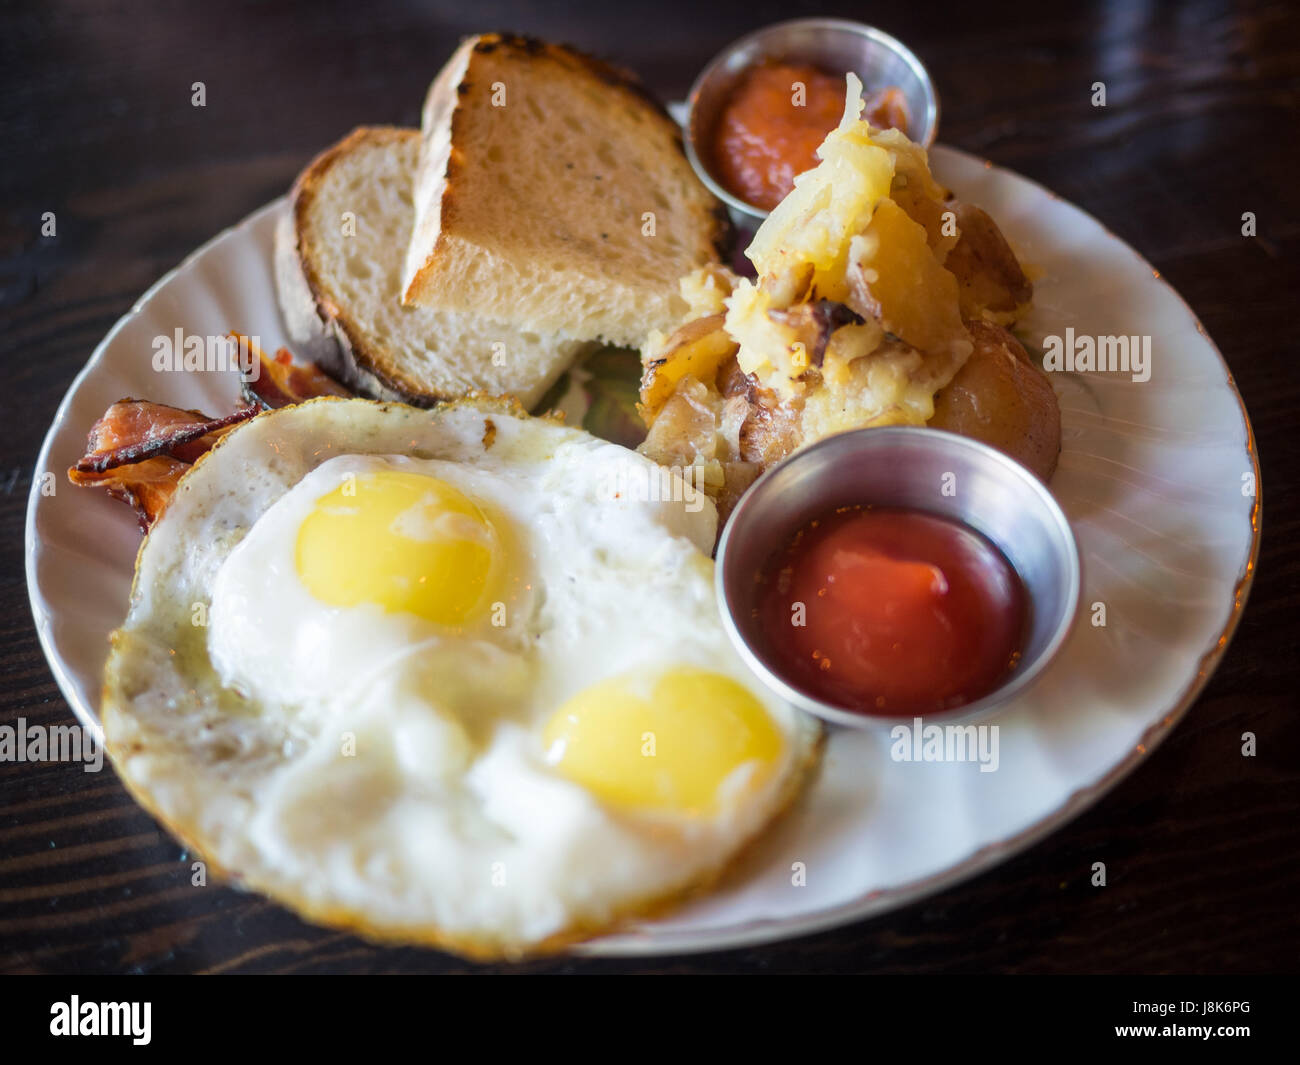 Two sunny side up eggs, hash brown potatoes, sourdough toast, and bacon (Canadian breakfast) from Chartier Restaurant - Stock Image